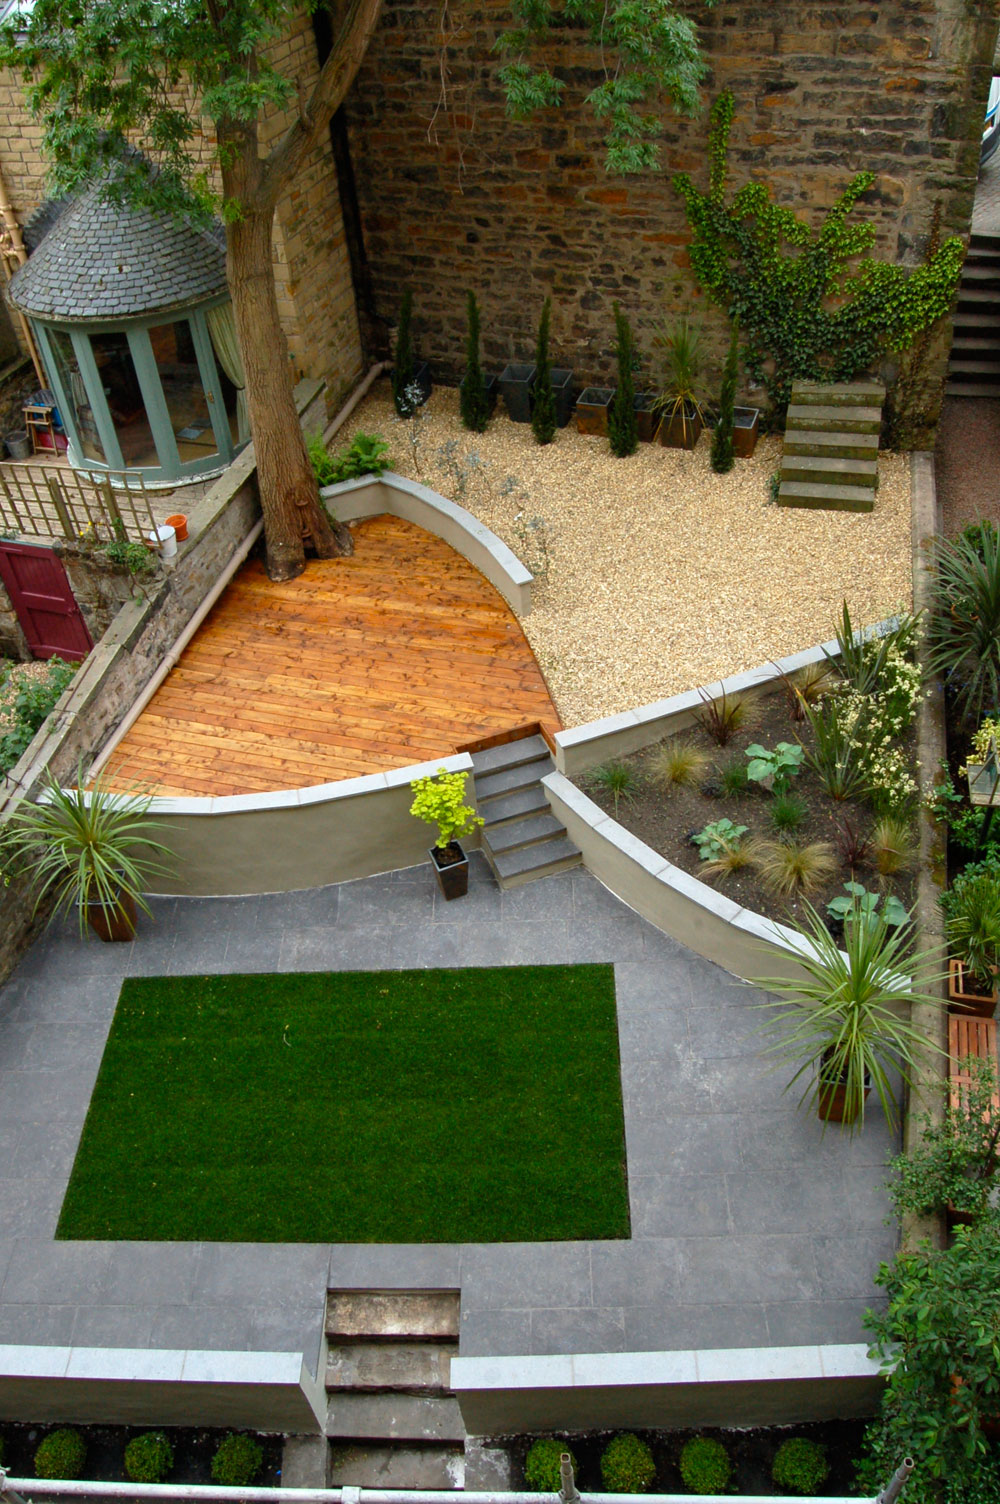 Modern garden design, build and planting